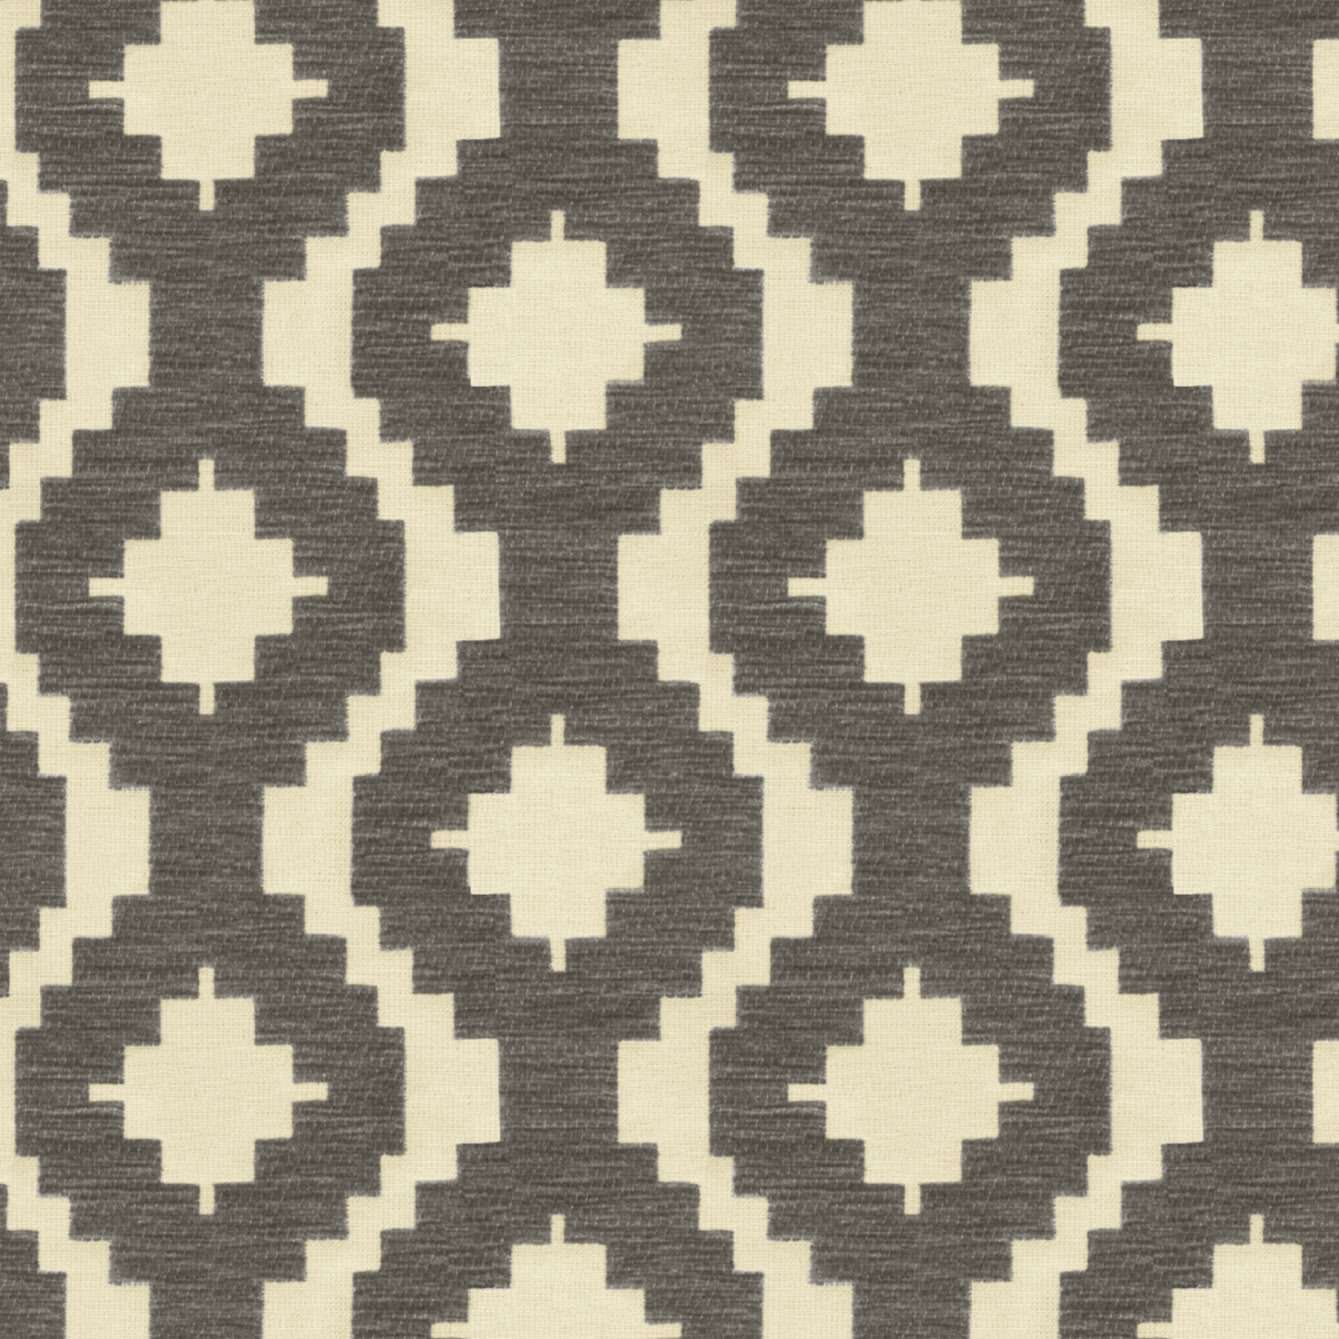 McAlister Textiles Arizona Geometric Charcoal Grey Fabric Fabrics 1 Metre